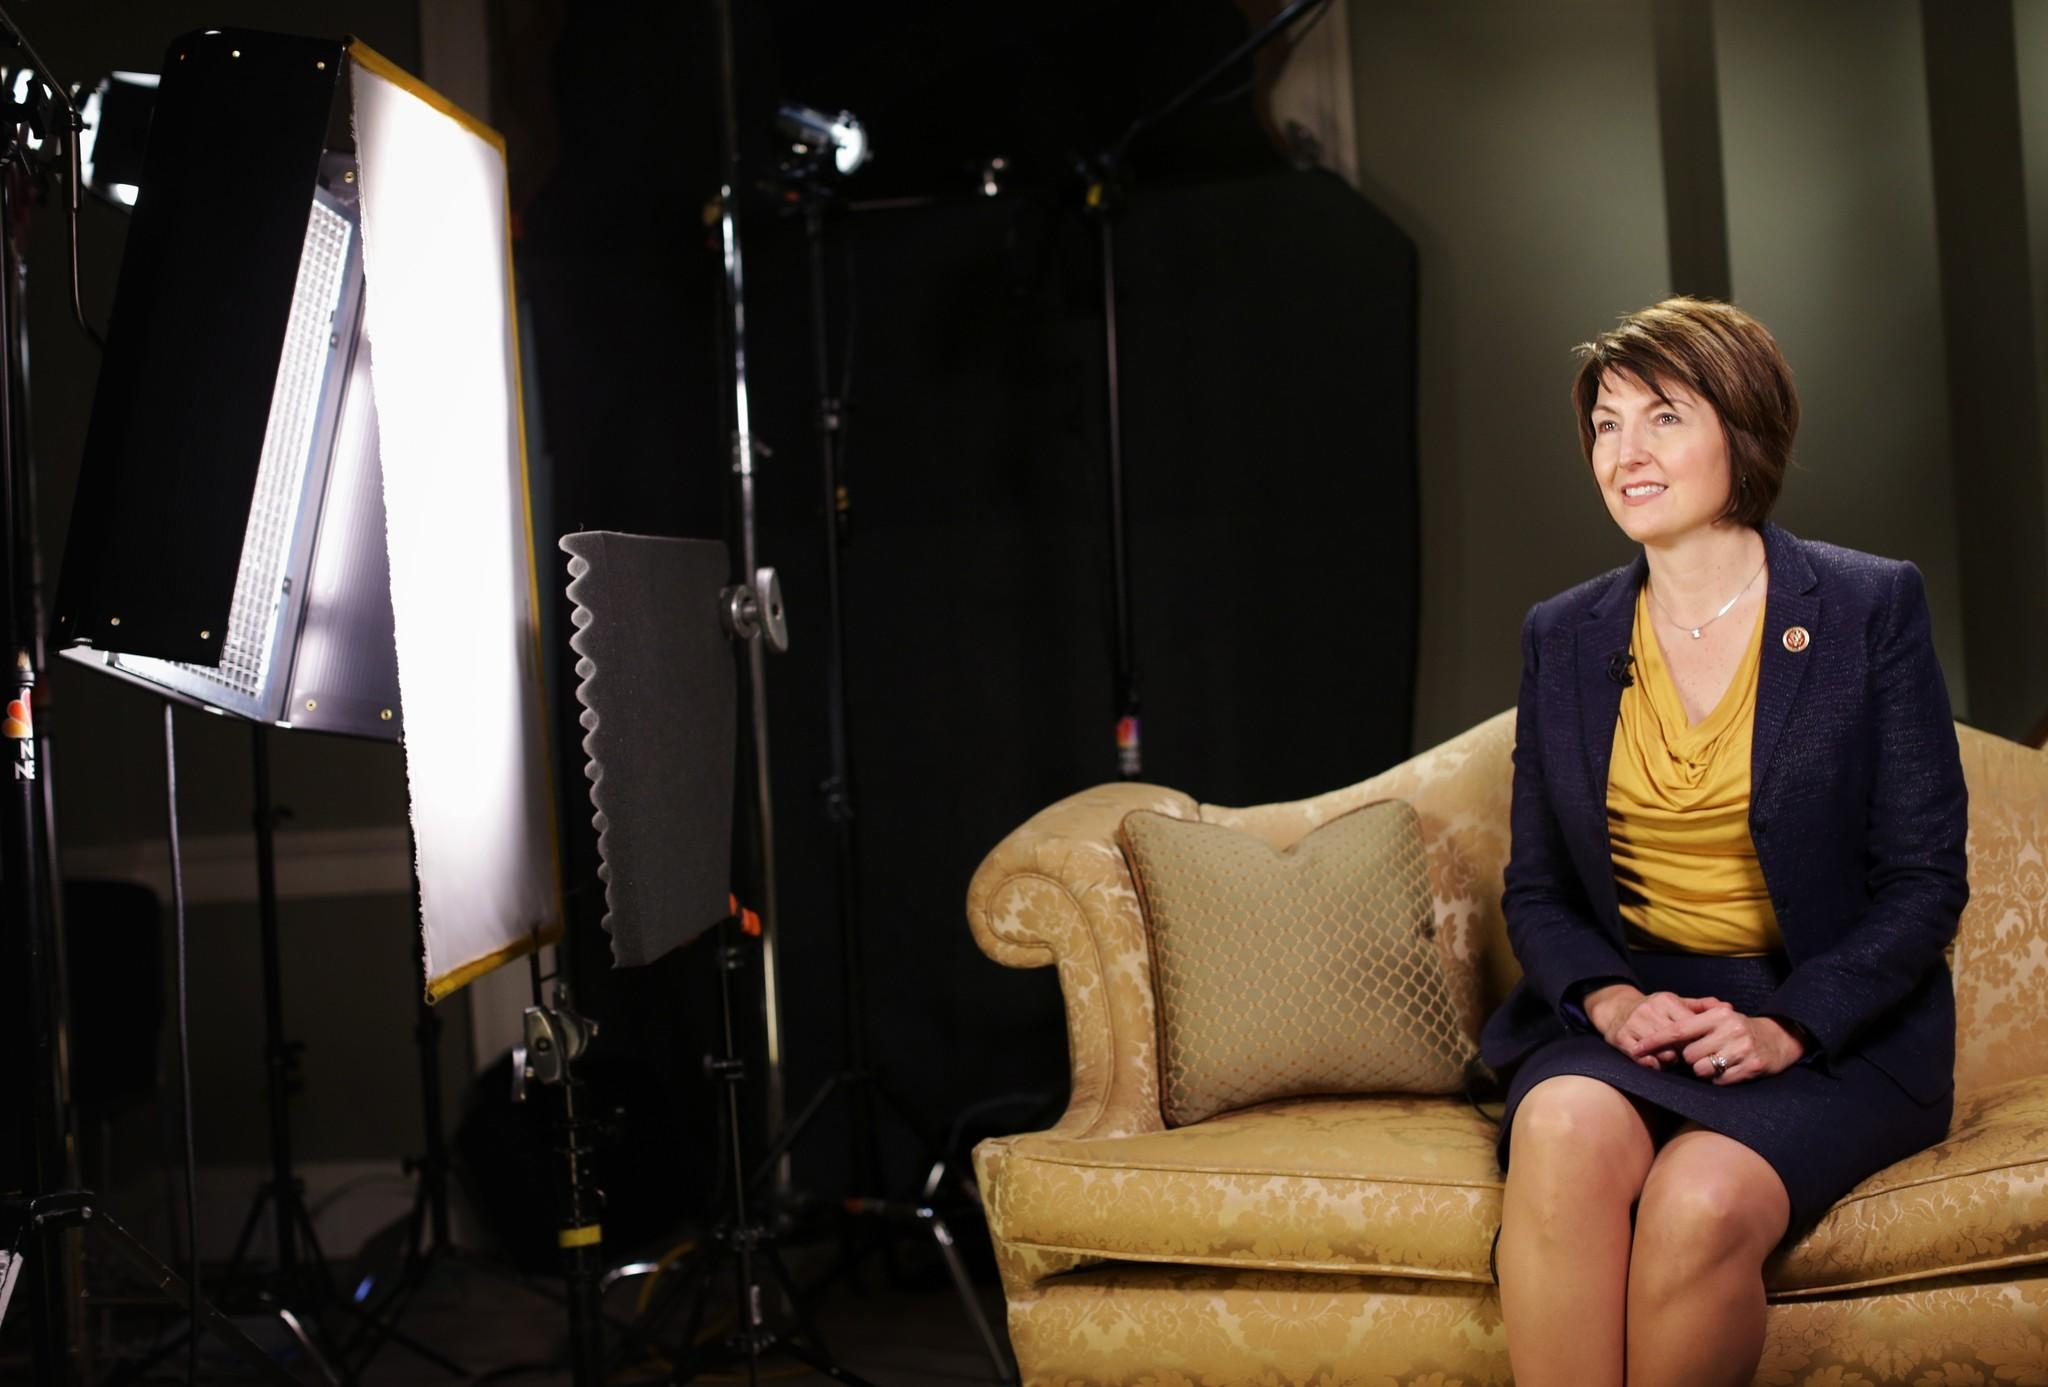 U.S. Rep. Cathy McMorris Rodgers (R-WA) sits on a couch as she prepares for responding to President Barack Obama tonight's State of the Union address January 28, 2014 on Capitol Hill in Washington, DC.